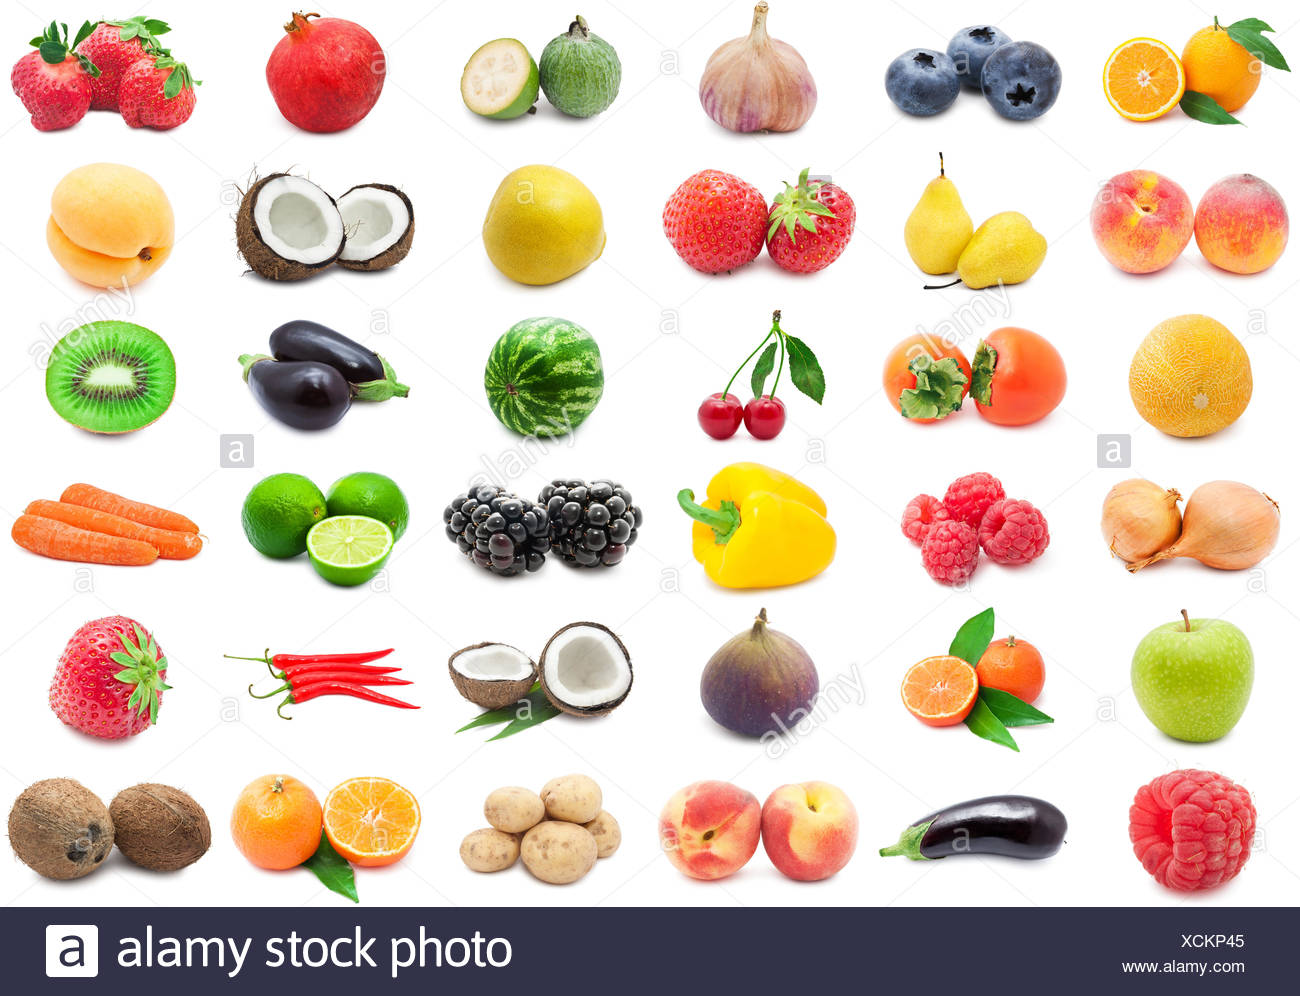 Collection of various fruits and vegetables isolated on white background - Stock Image